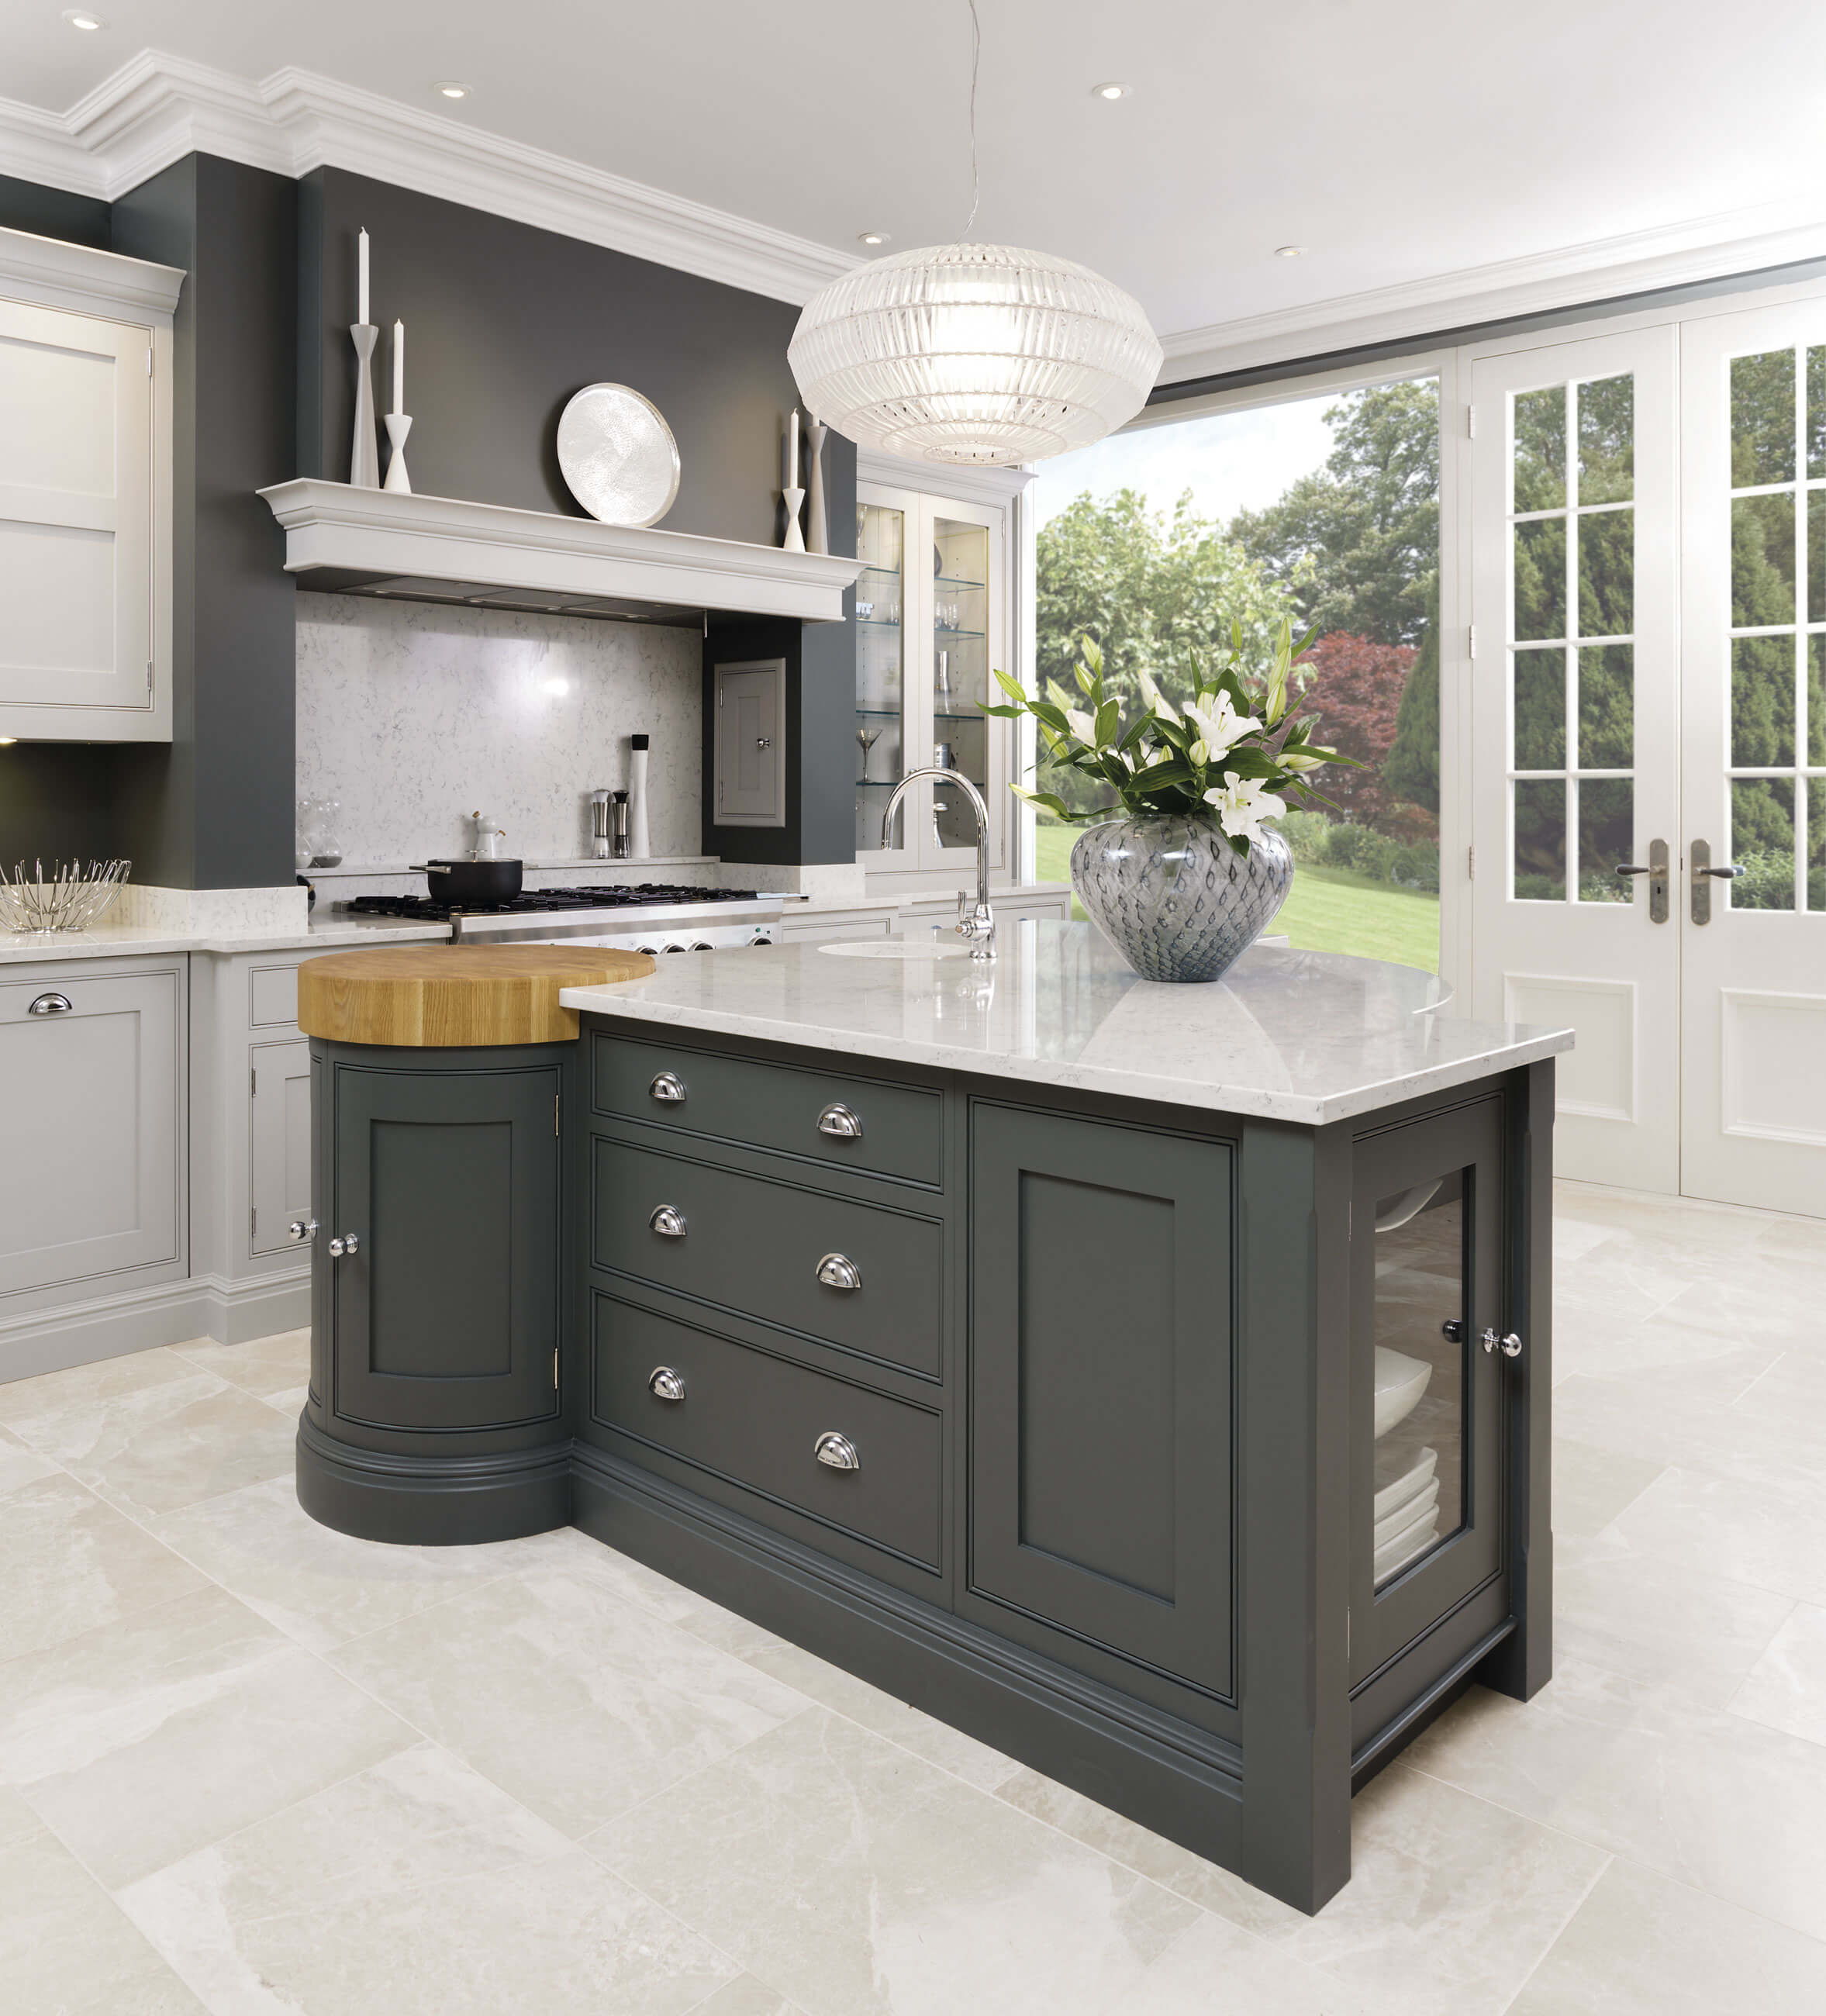 Exceptional Our Talented Designers Will Work With You To Create The Perfect Island For  Your Kitchen, With All The Features You Desire. Kitchen Islands Can Be ...